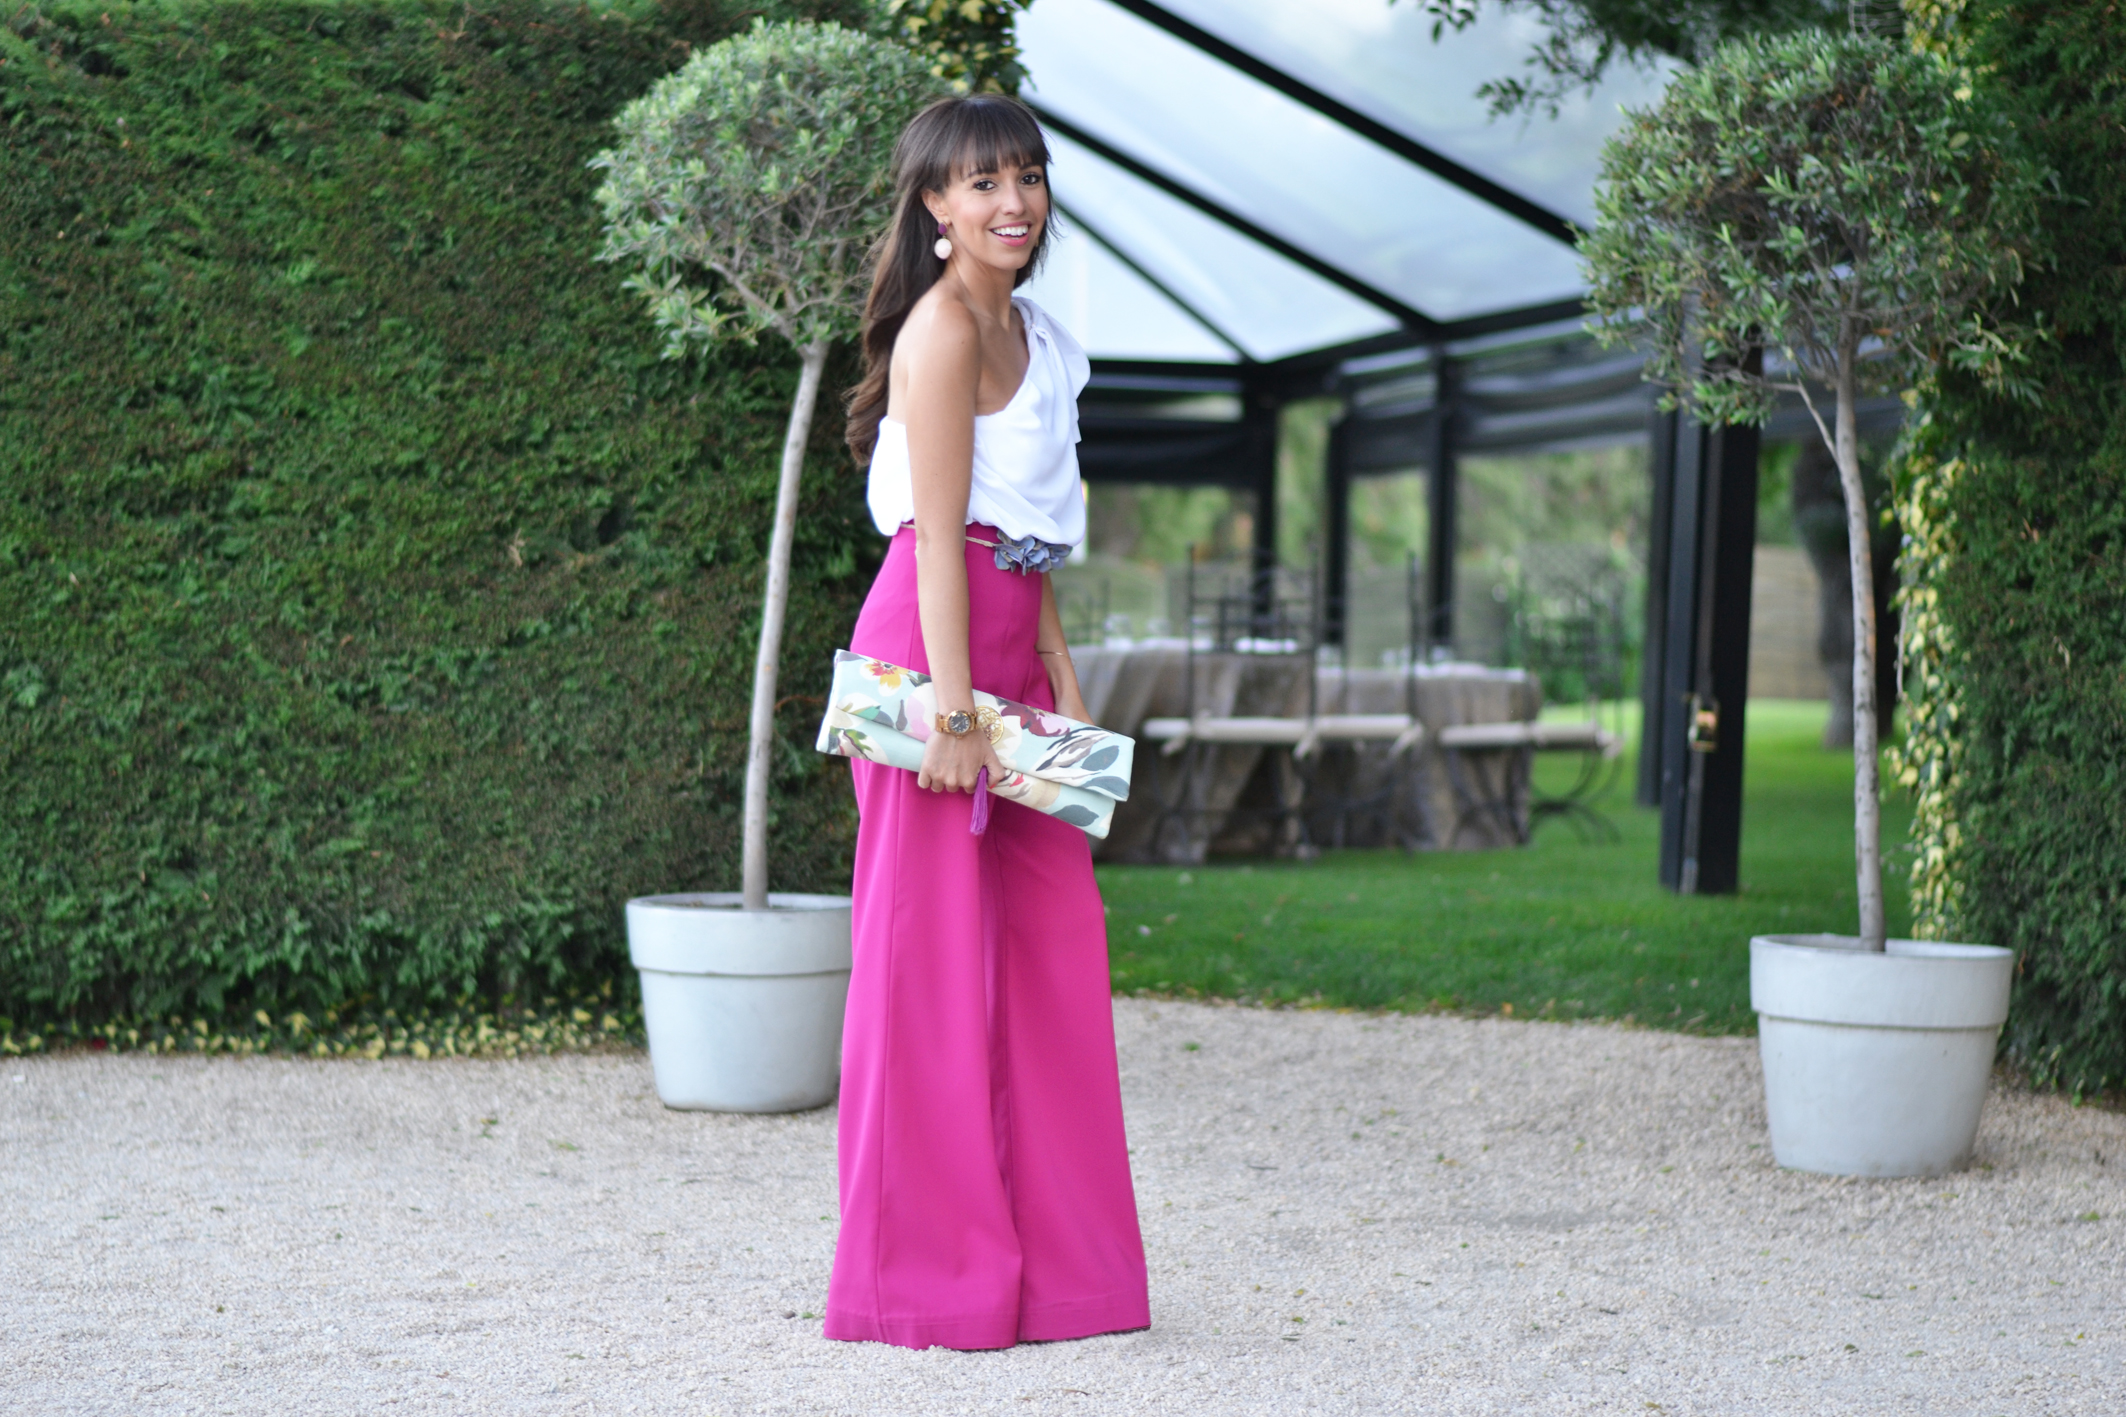 Summer-wedding_ palazzo-pants_ flower-belt_wedding-outfit_ceremony_street-style_(7)